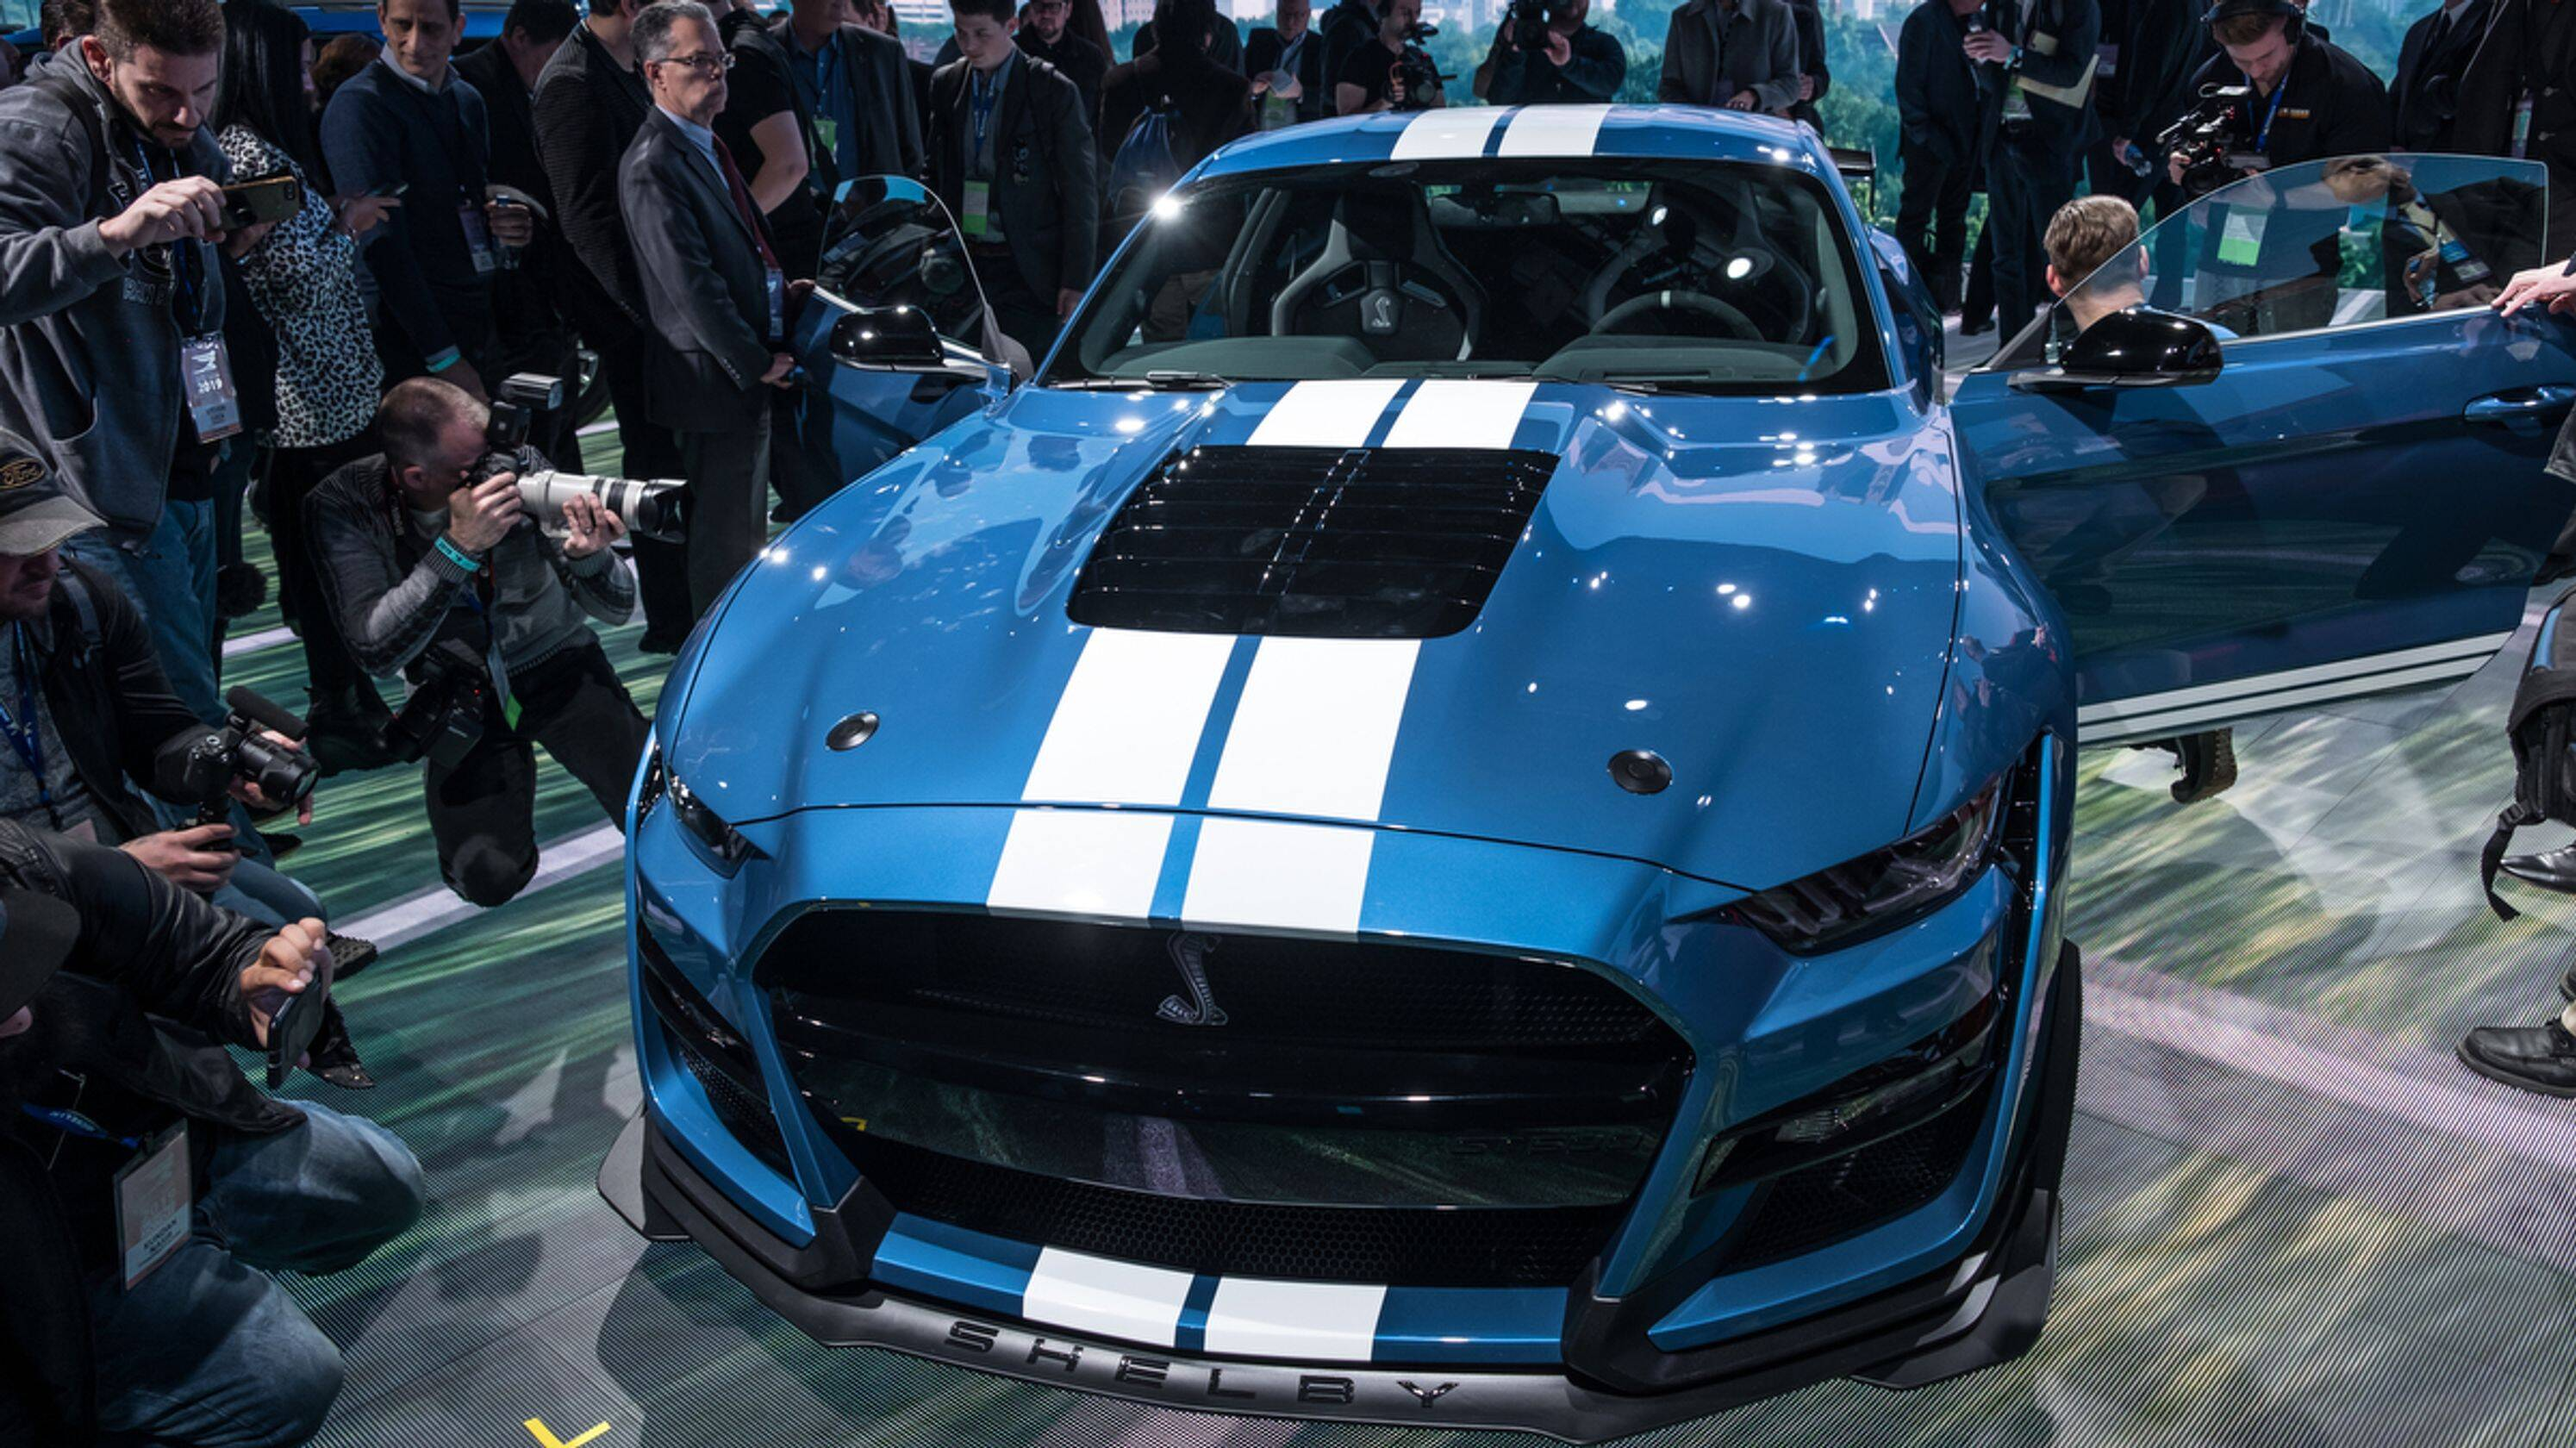 Ford Mustang Shelby GT 500. Foto: Detroit Free Press